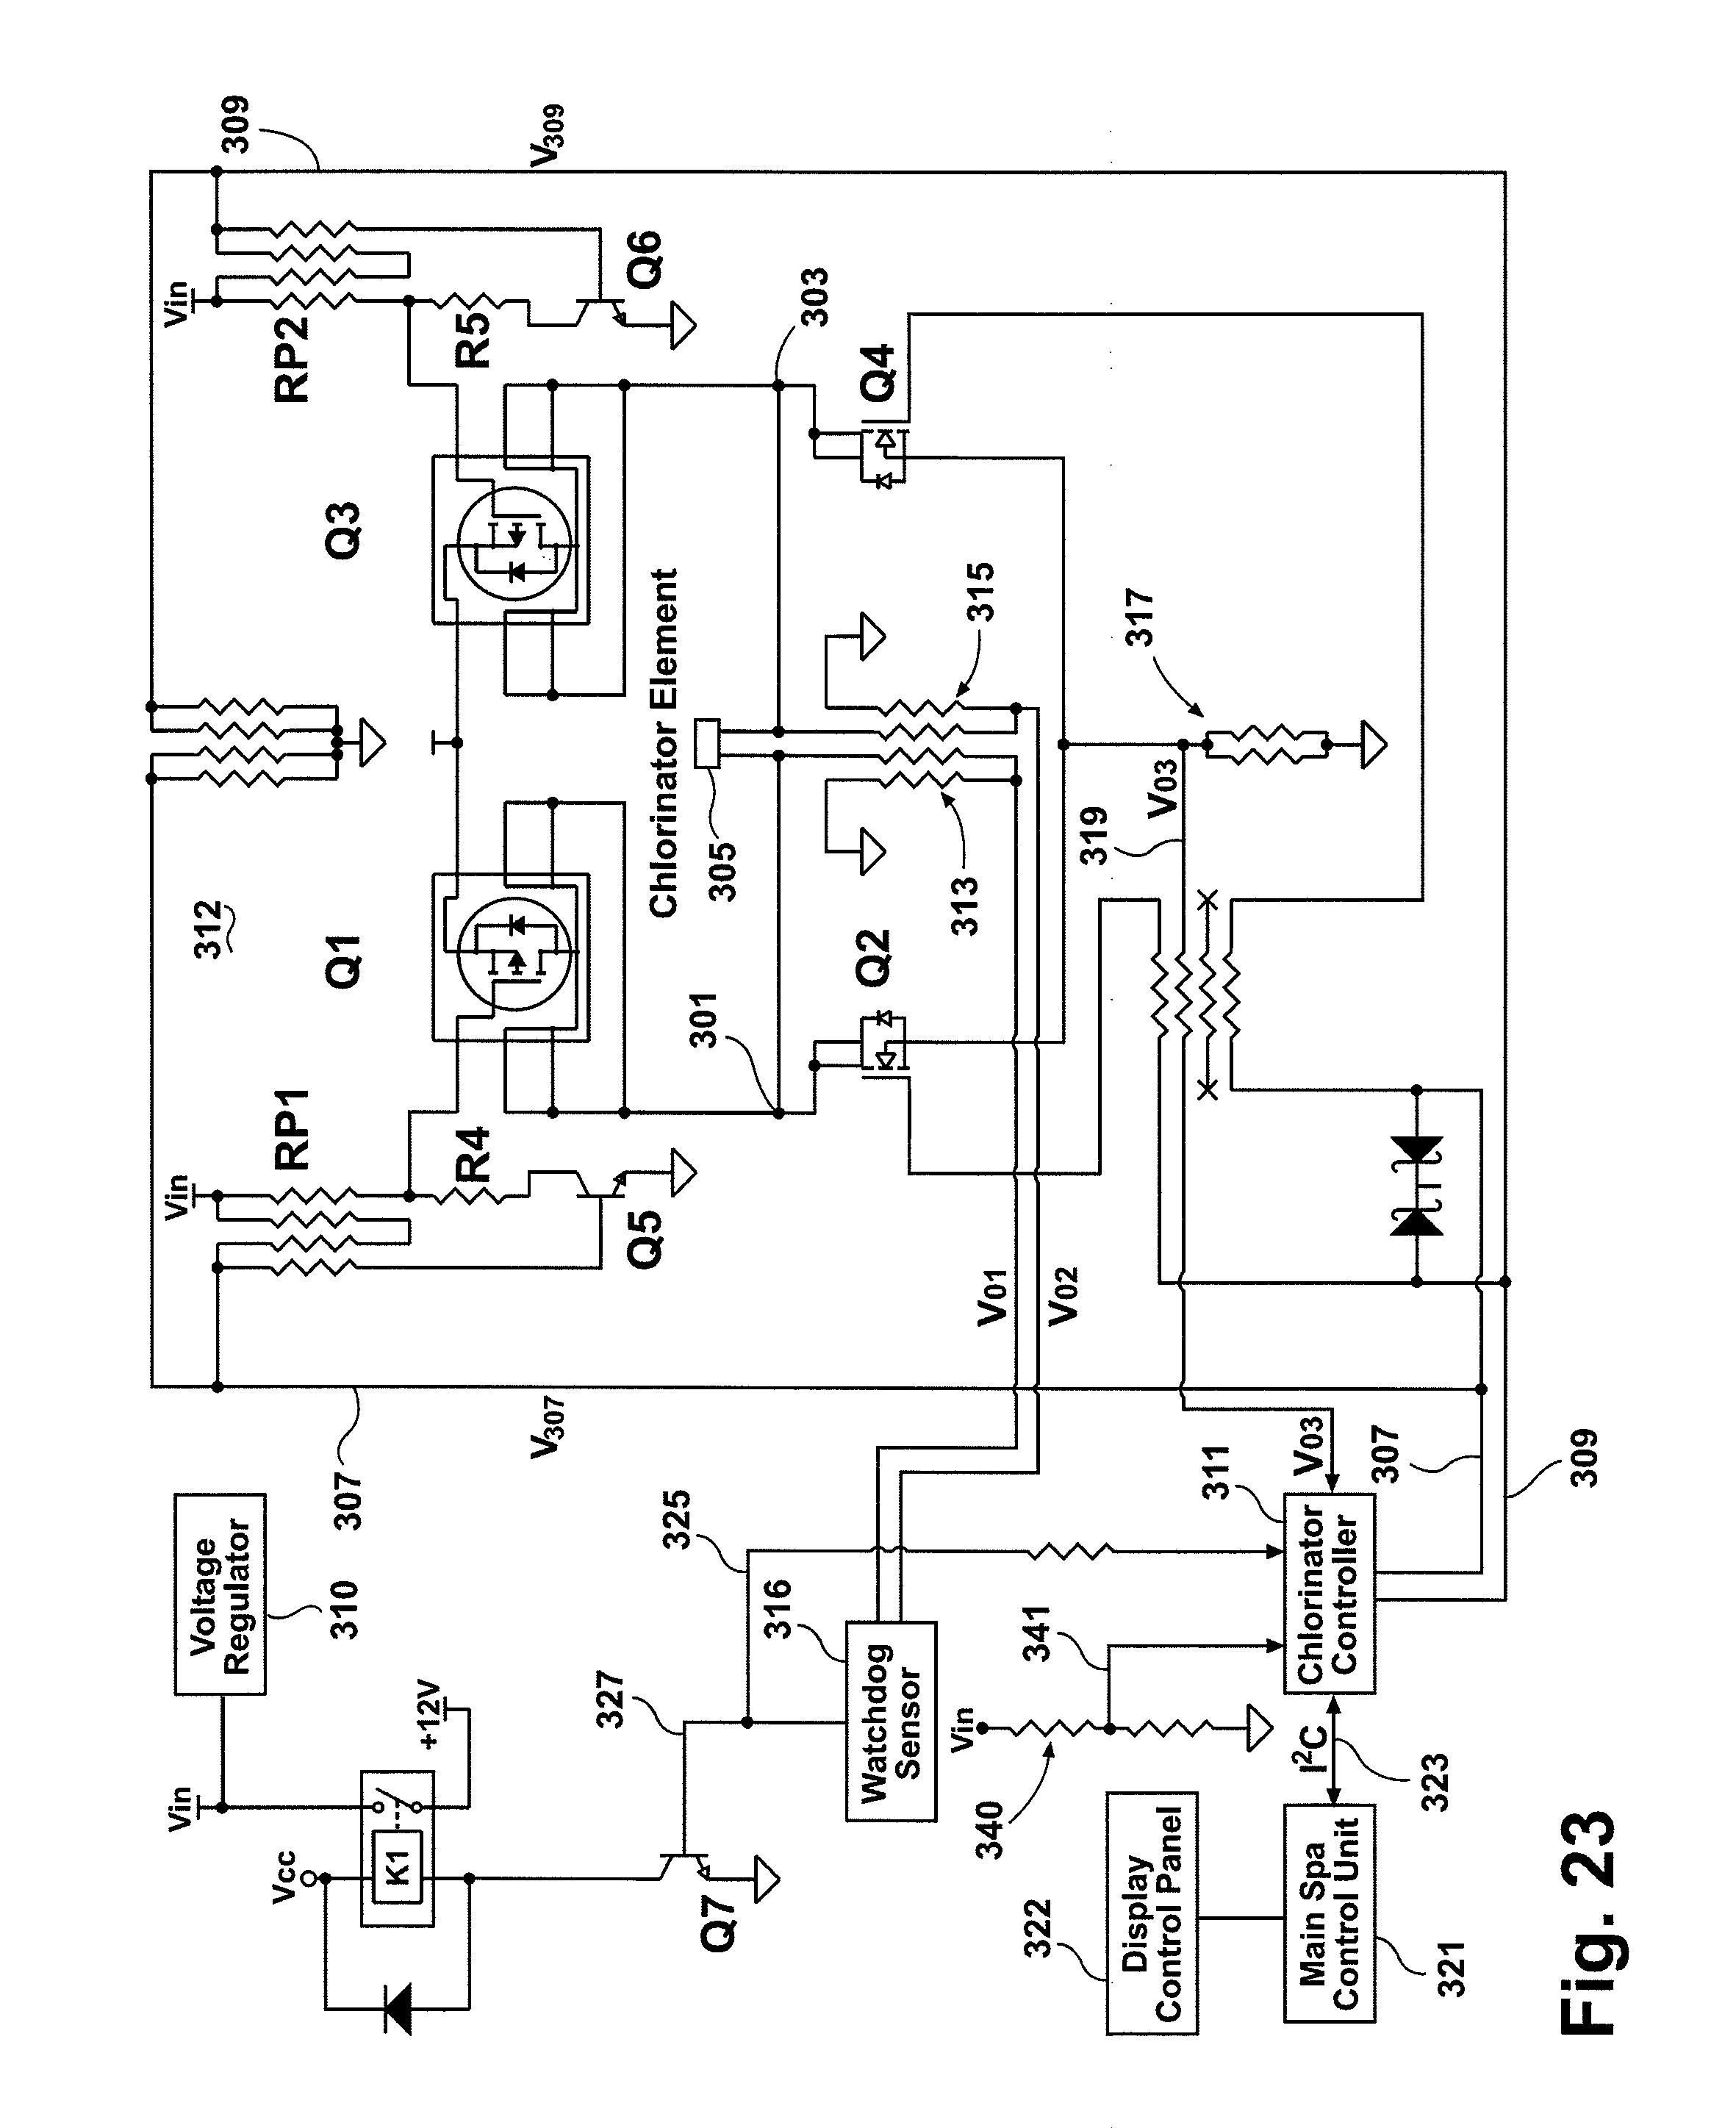 hot tub wiring diagram readingrat net US08273254 20120925 D00009 hot tub  wiring diagram readingrat net Sundance Spas Manuals Diagram at highcare.